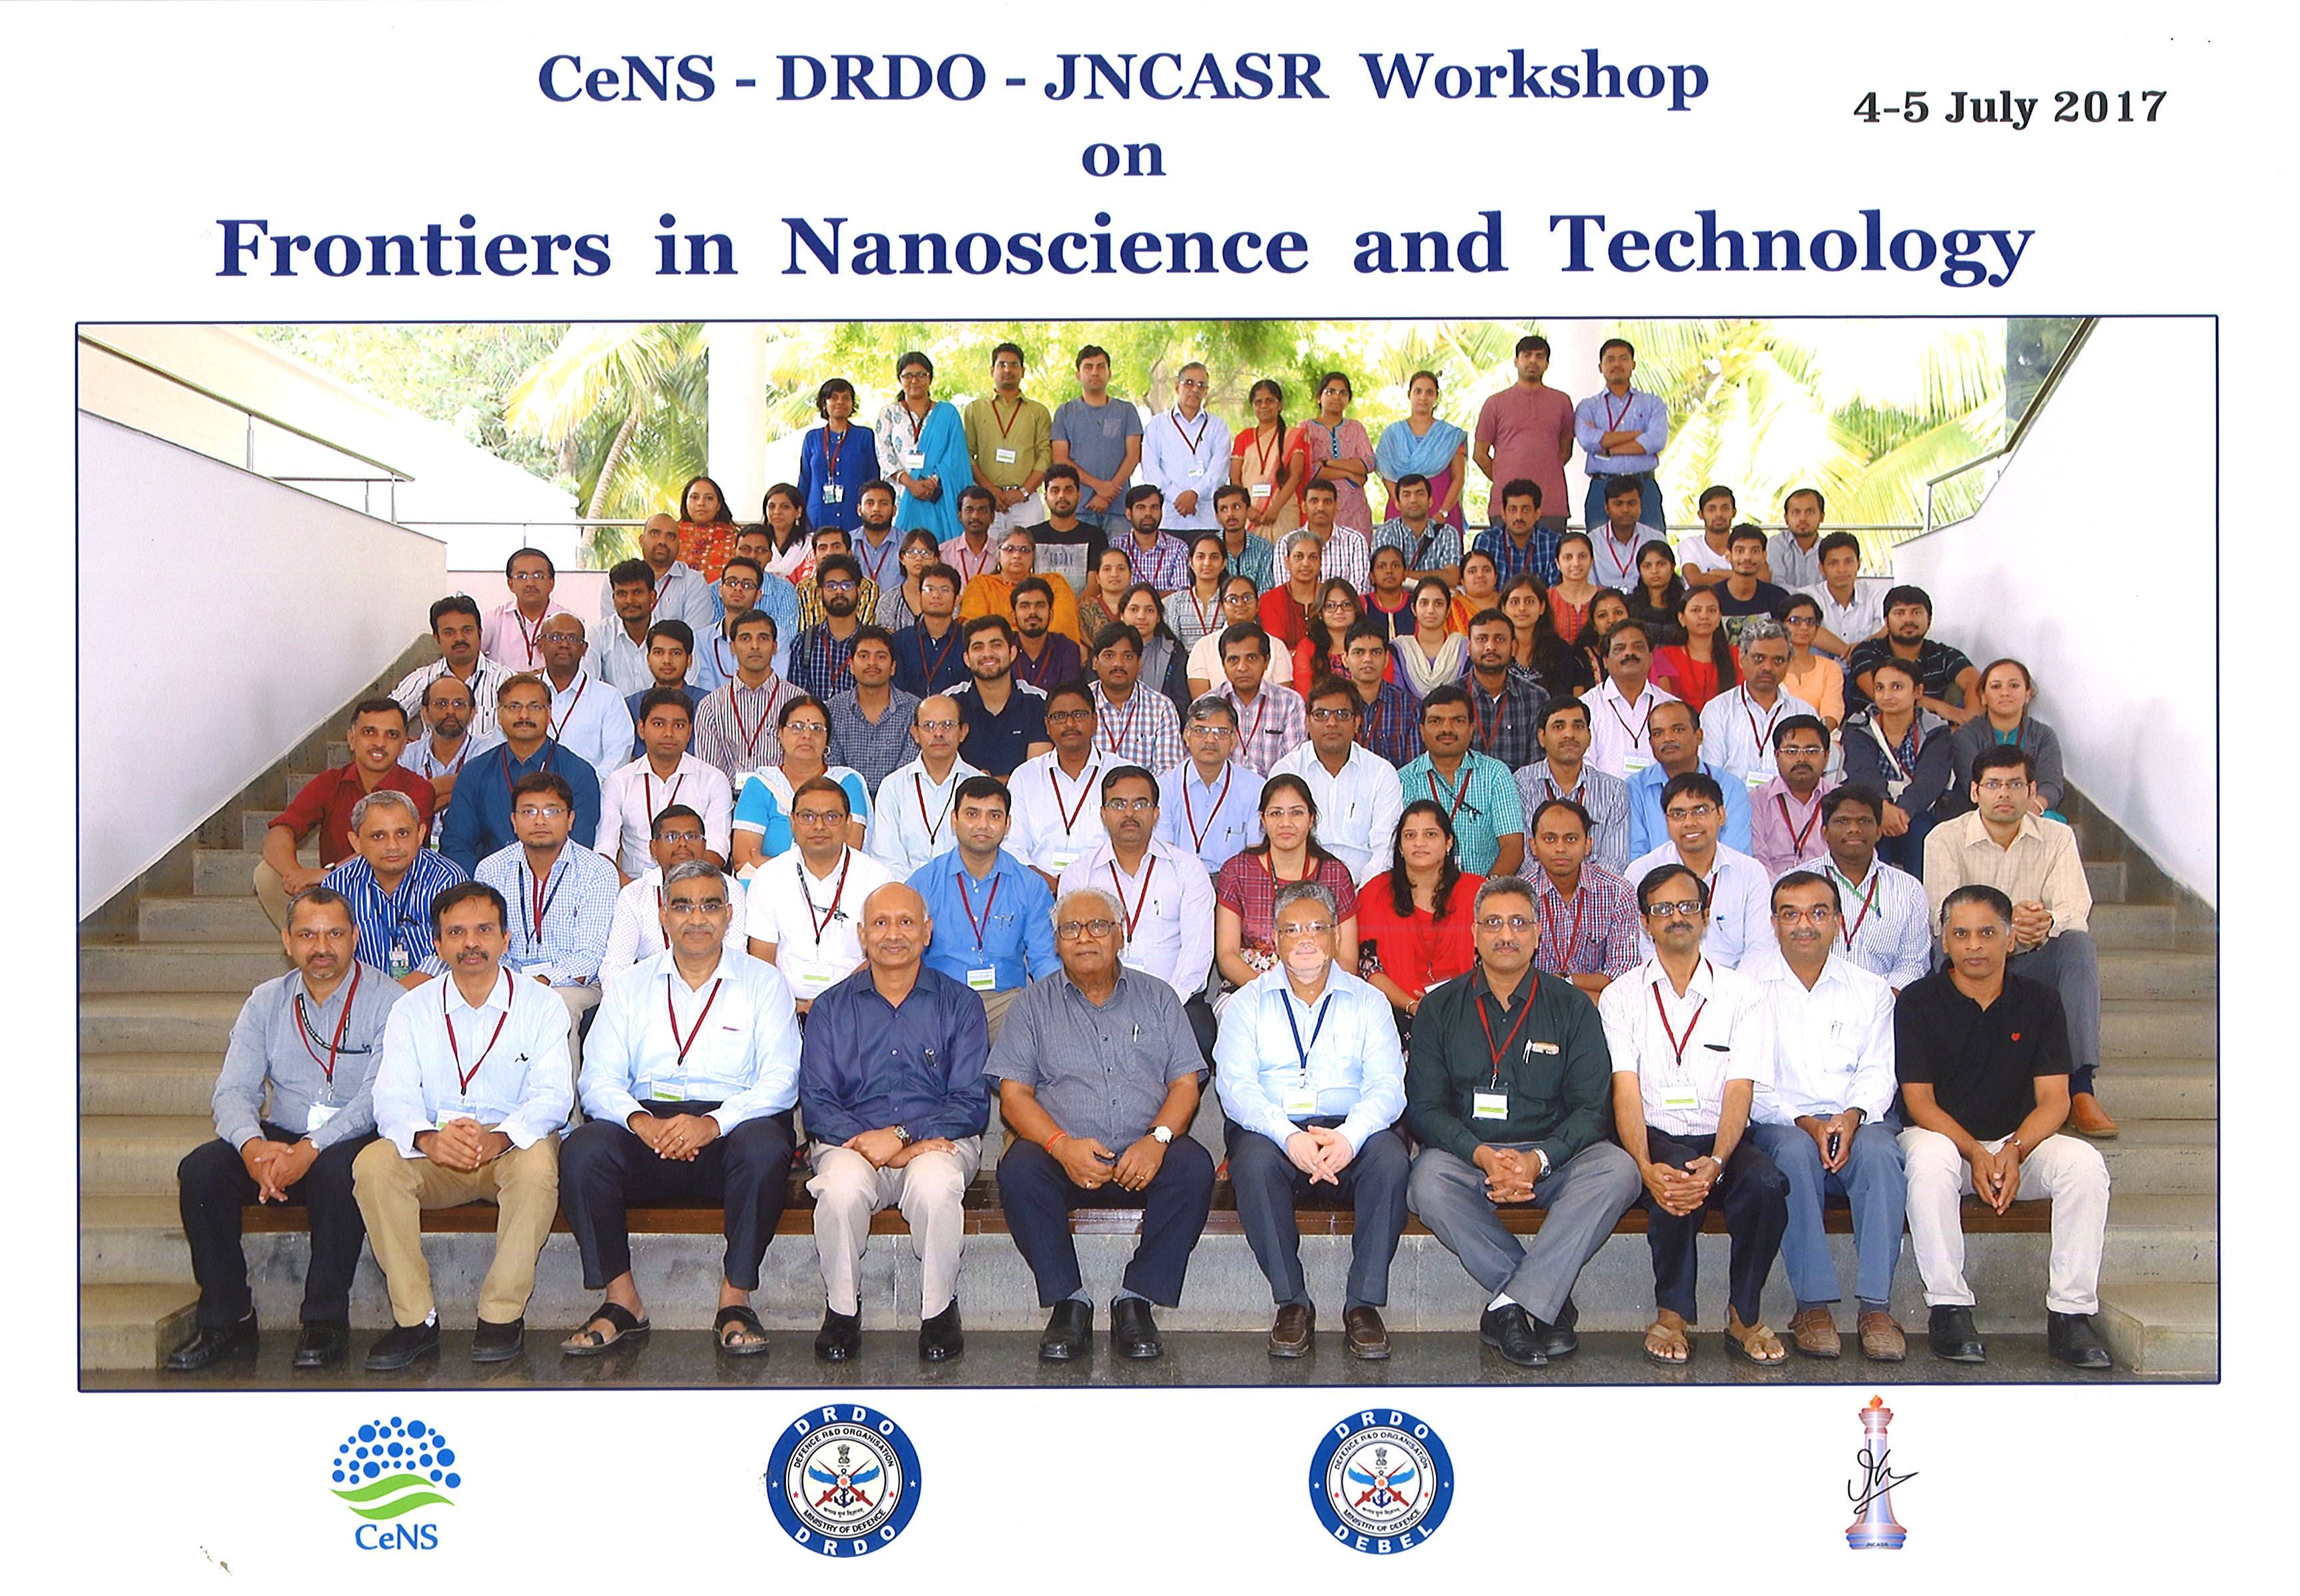 CeNS DRDO JNC workshop group